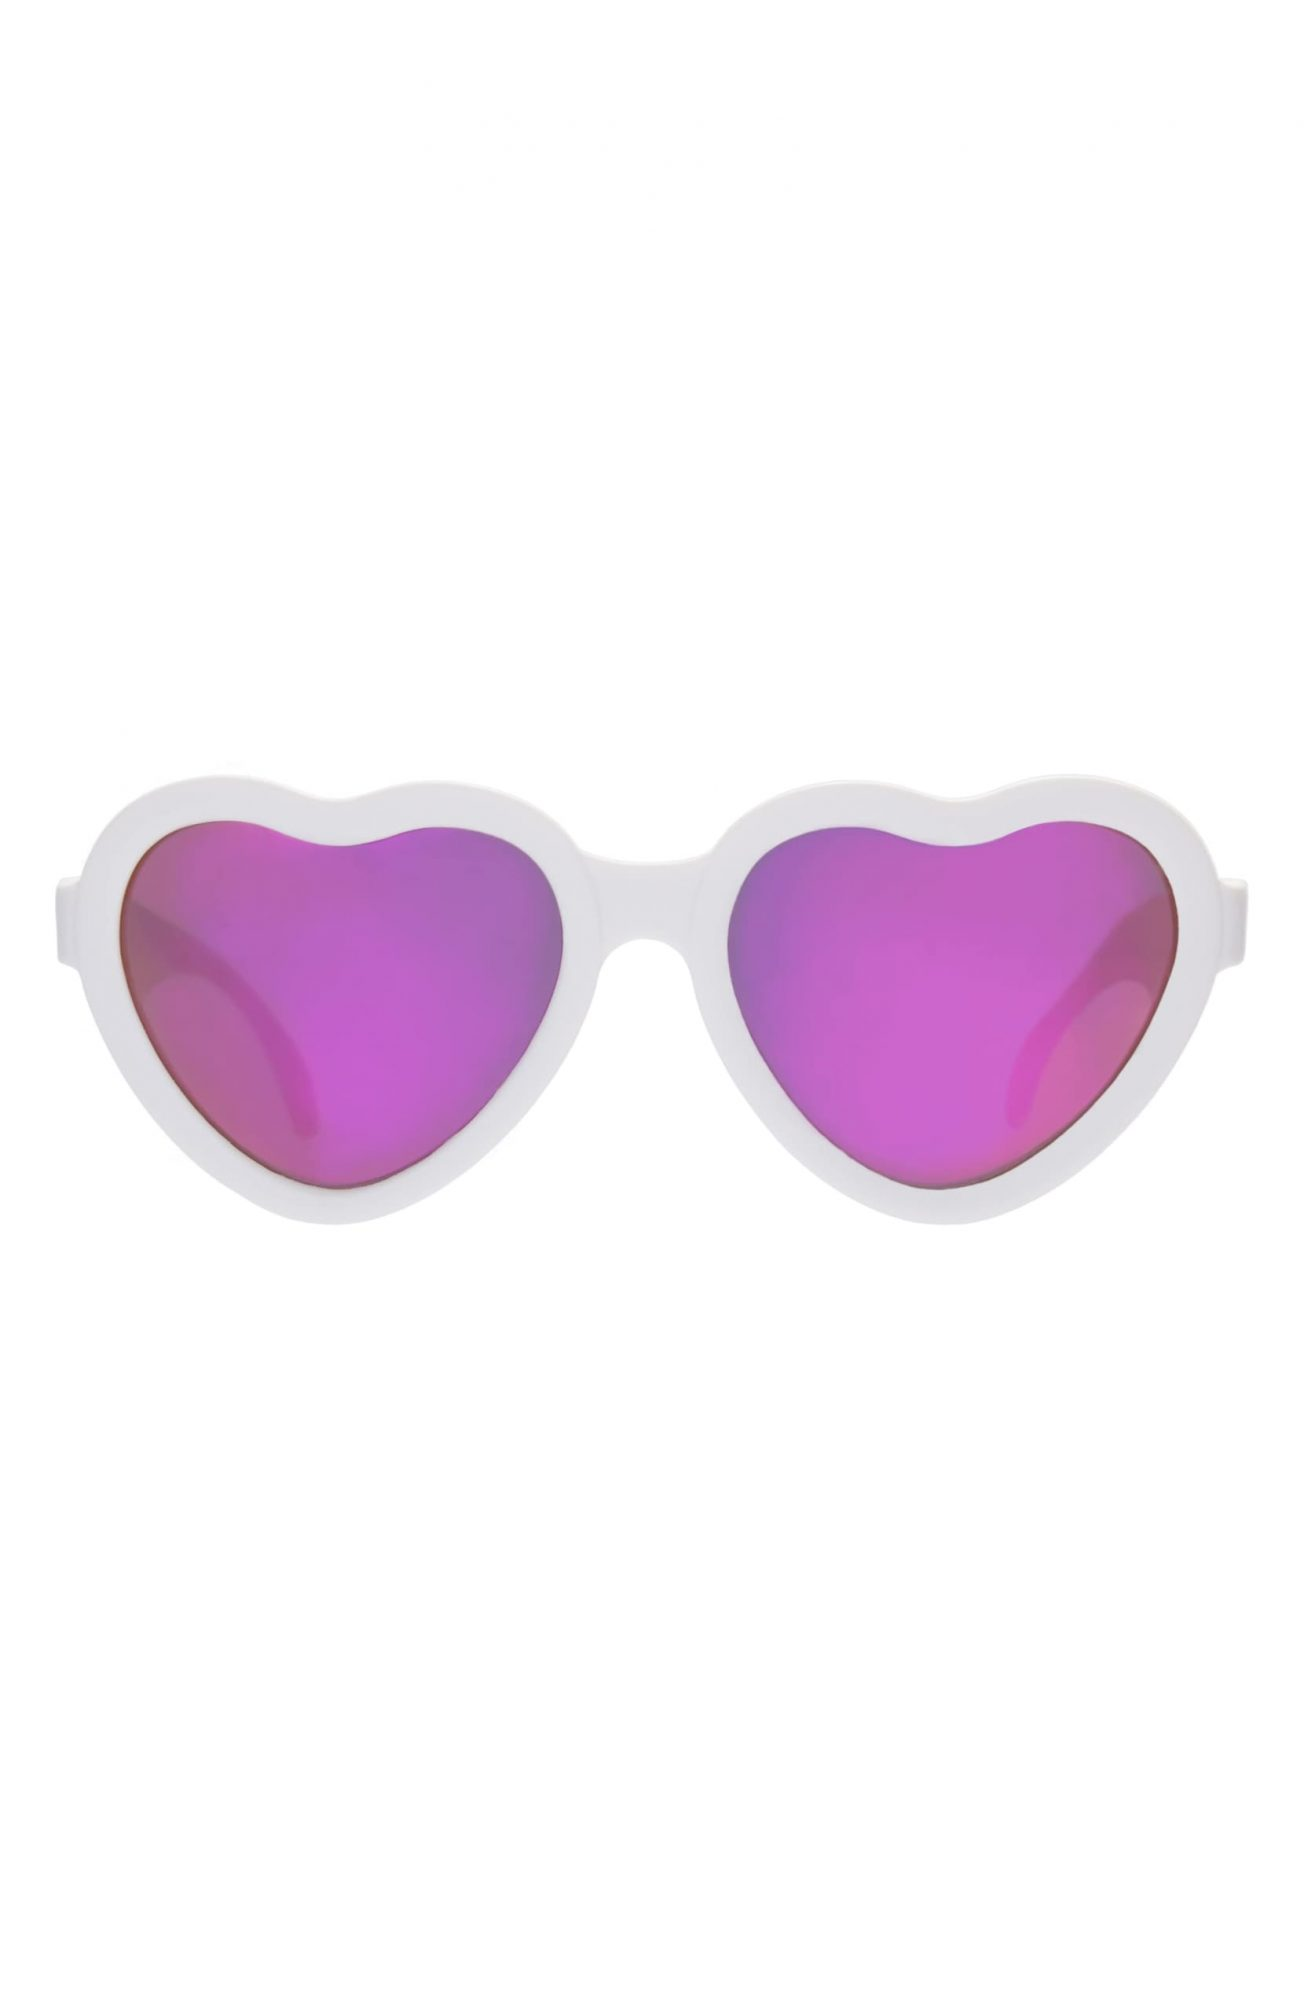 Babiators heart-shaped sunglasses